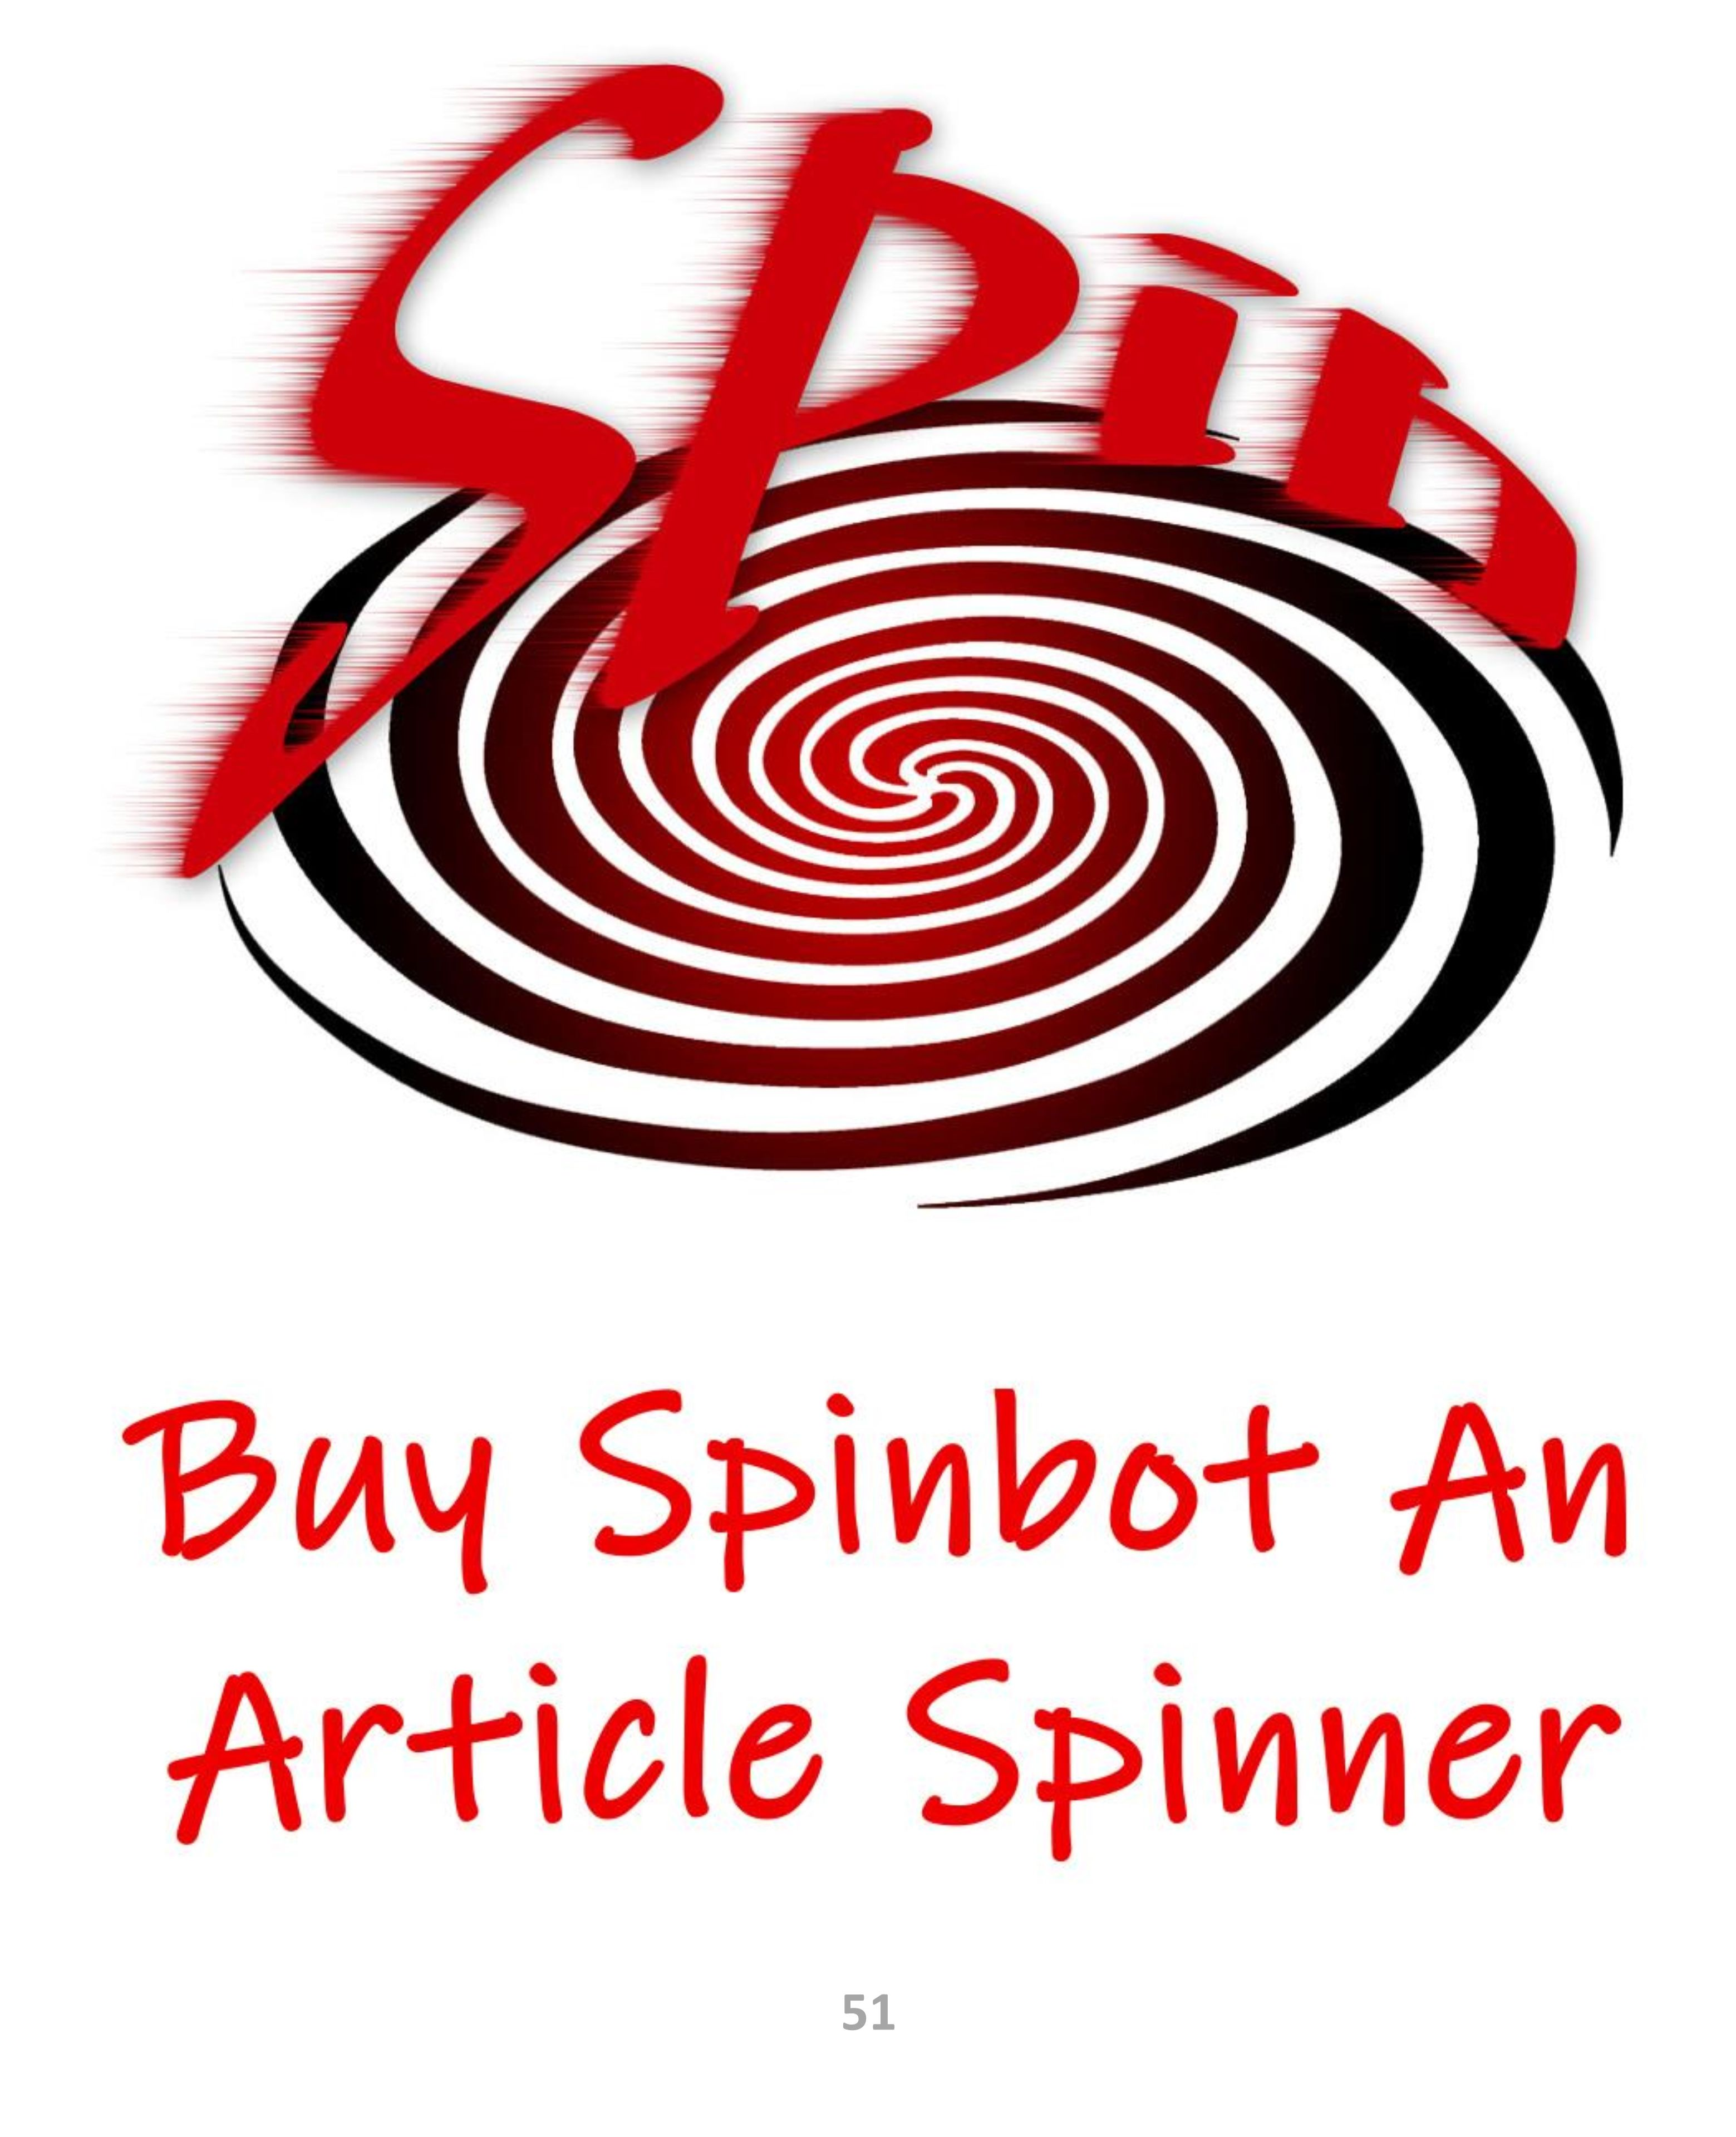 Spinbot Use My Article Spinner Instead Things to sell